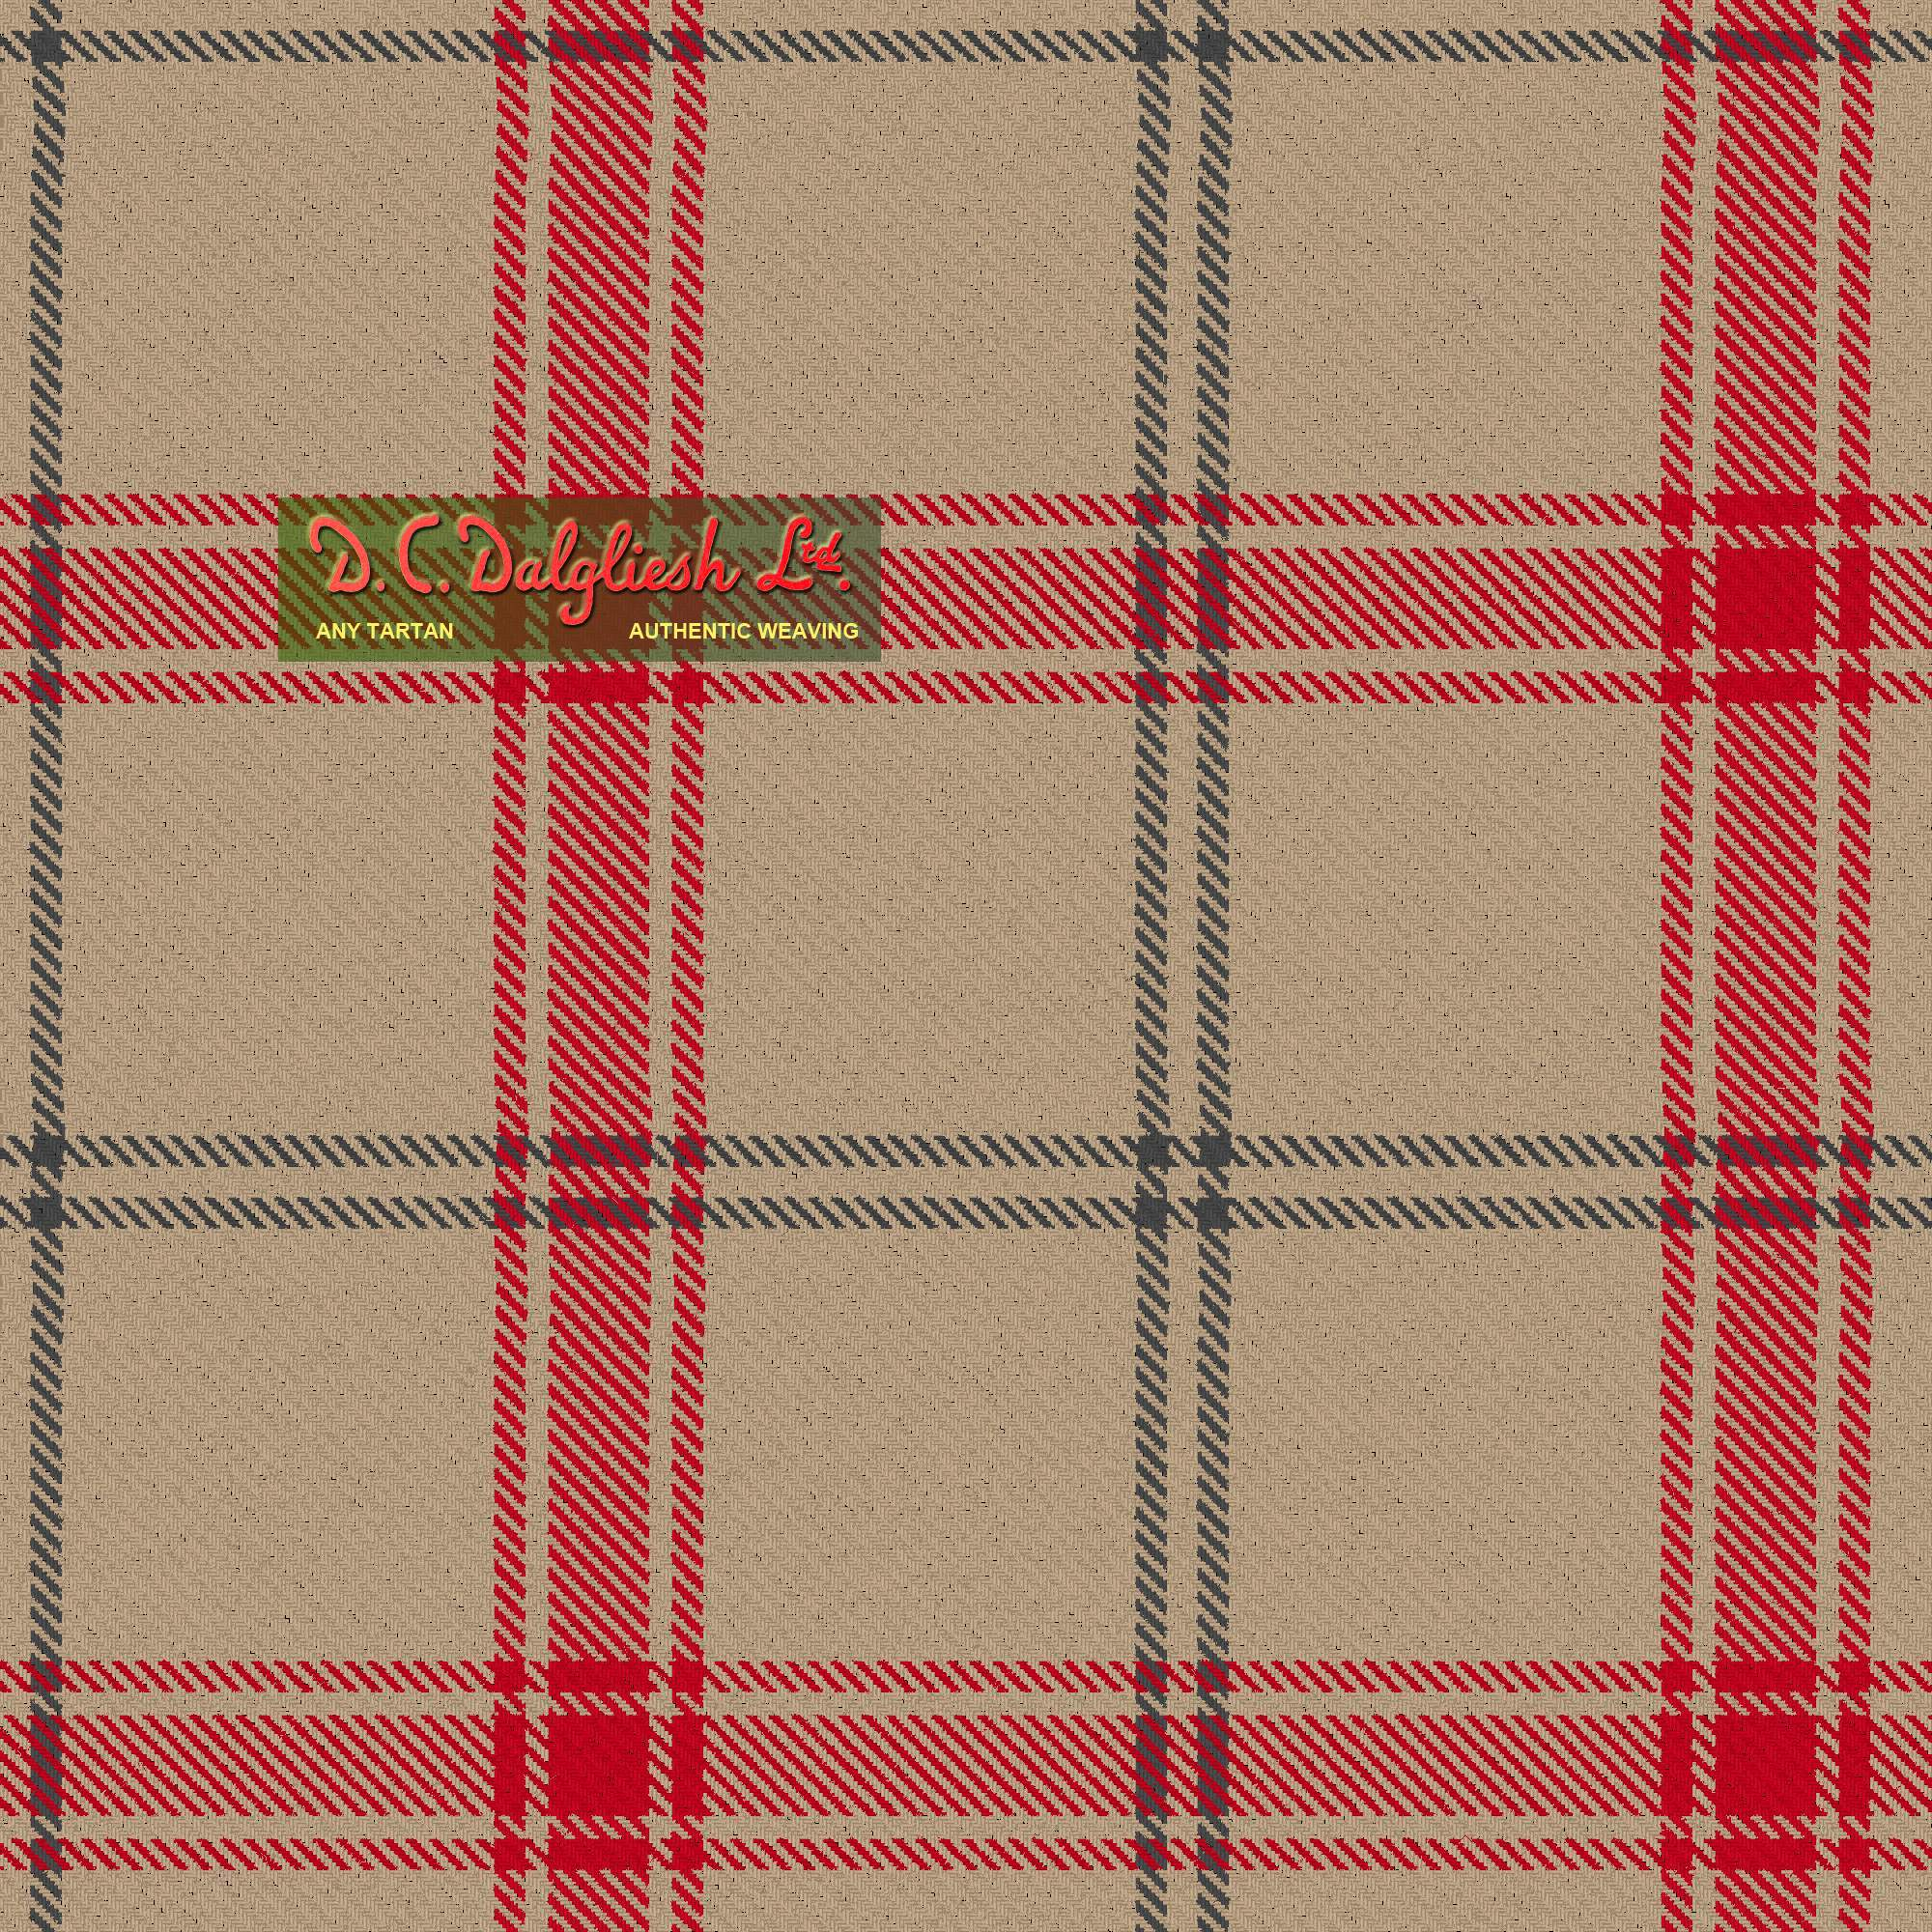 Auchairne Grey Fabric By Dc Dalgliesh Hand Crafted Tartans